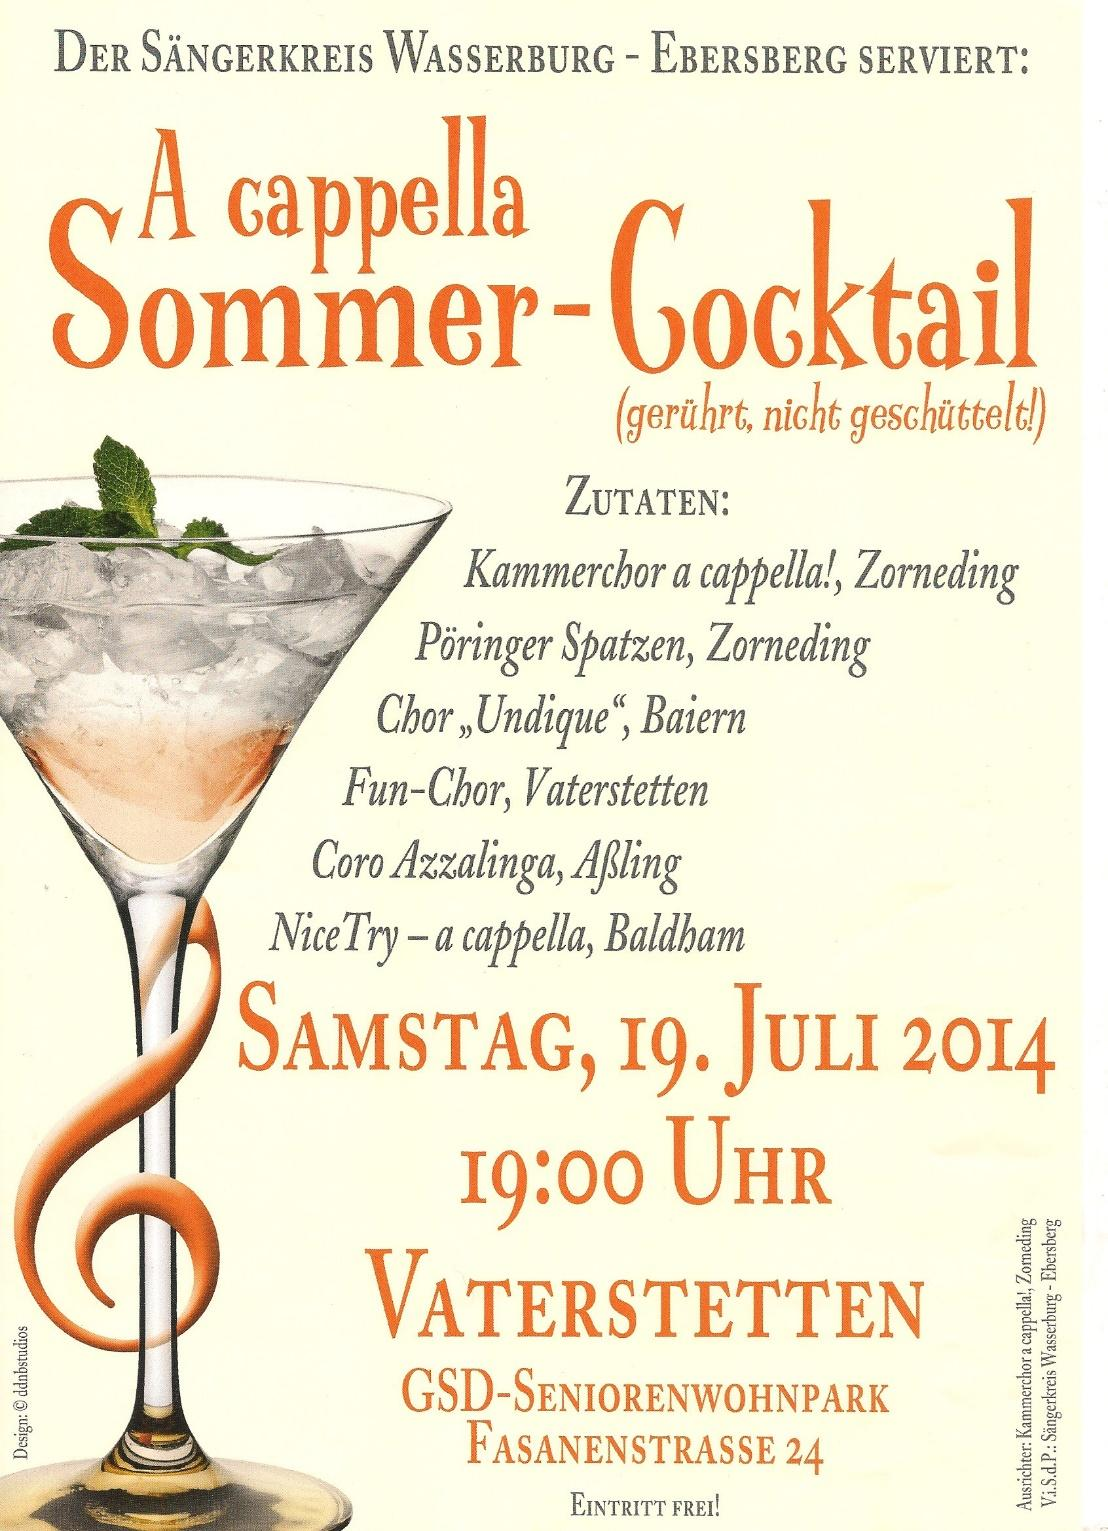 A cappella Sommer-Abend